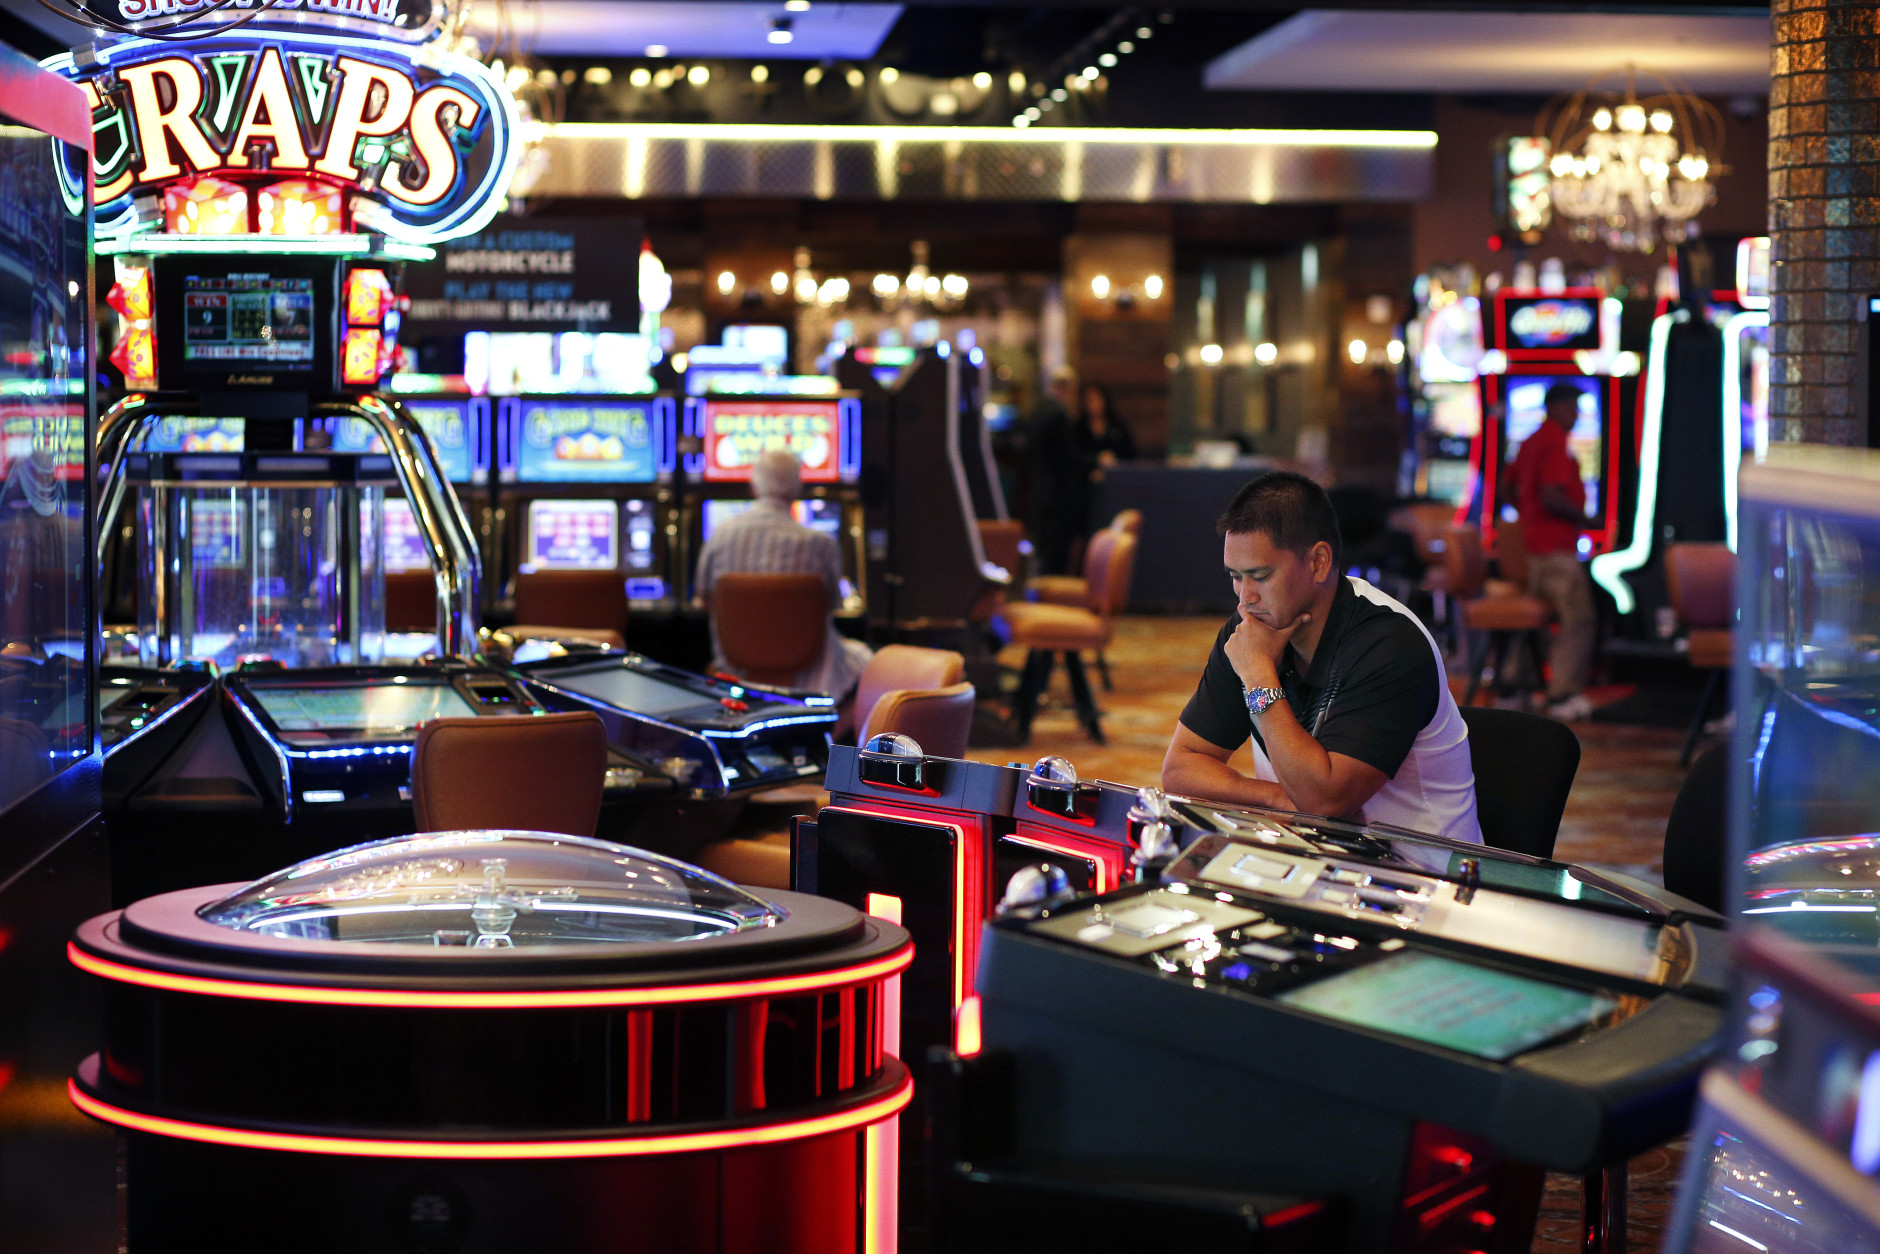 As gamblers shun stingier slots, casinos shake things up